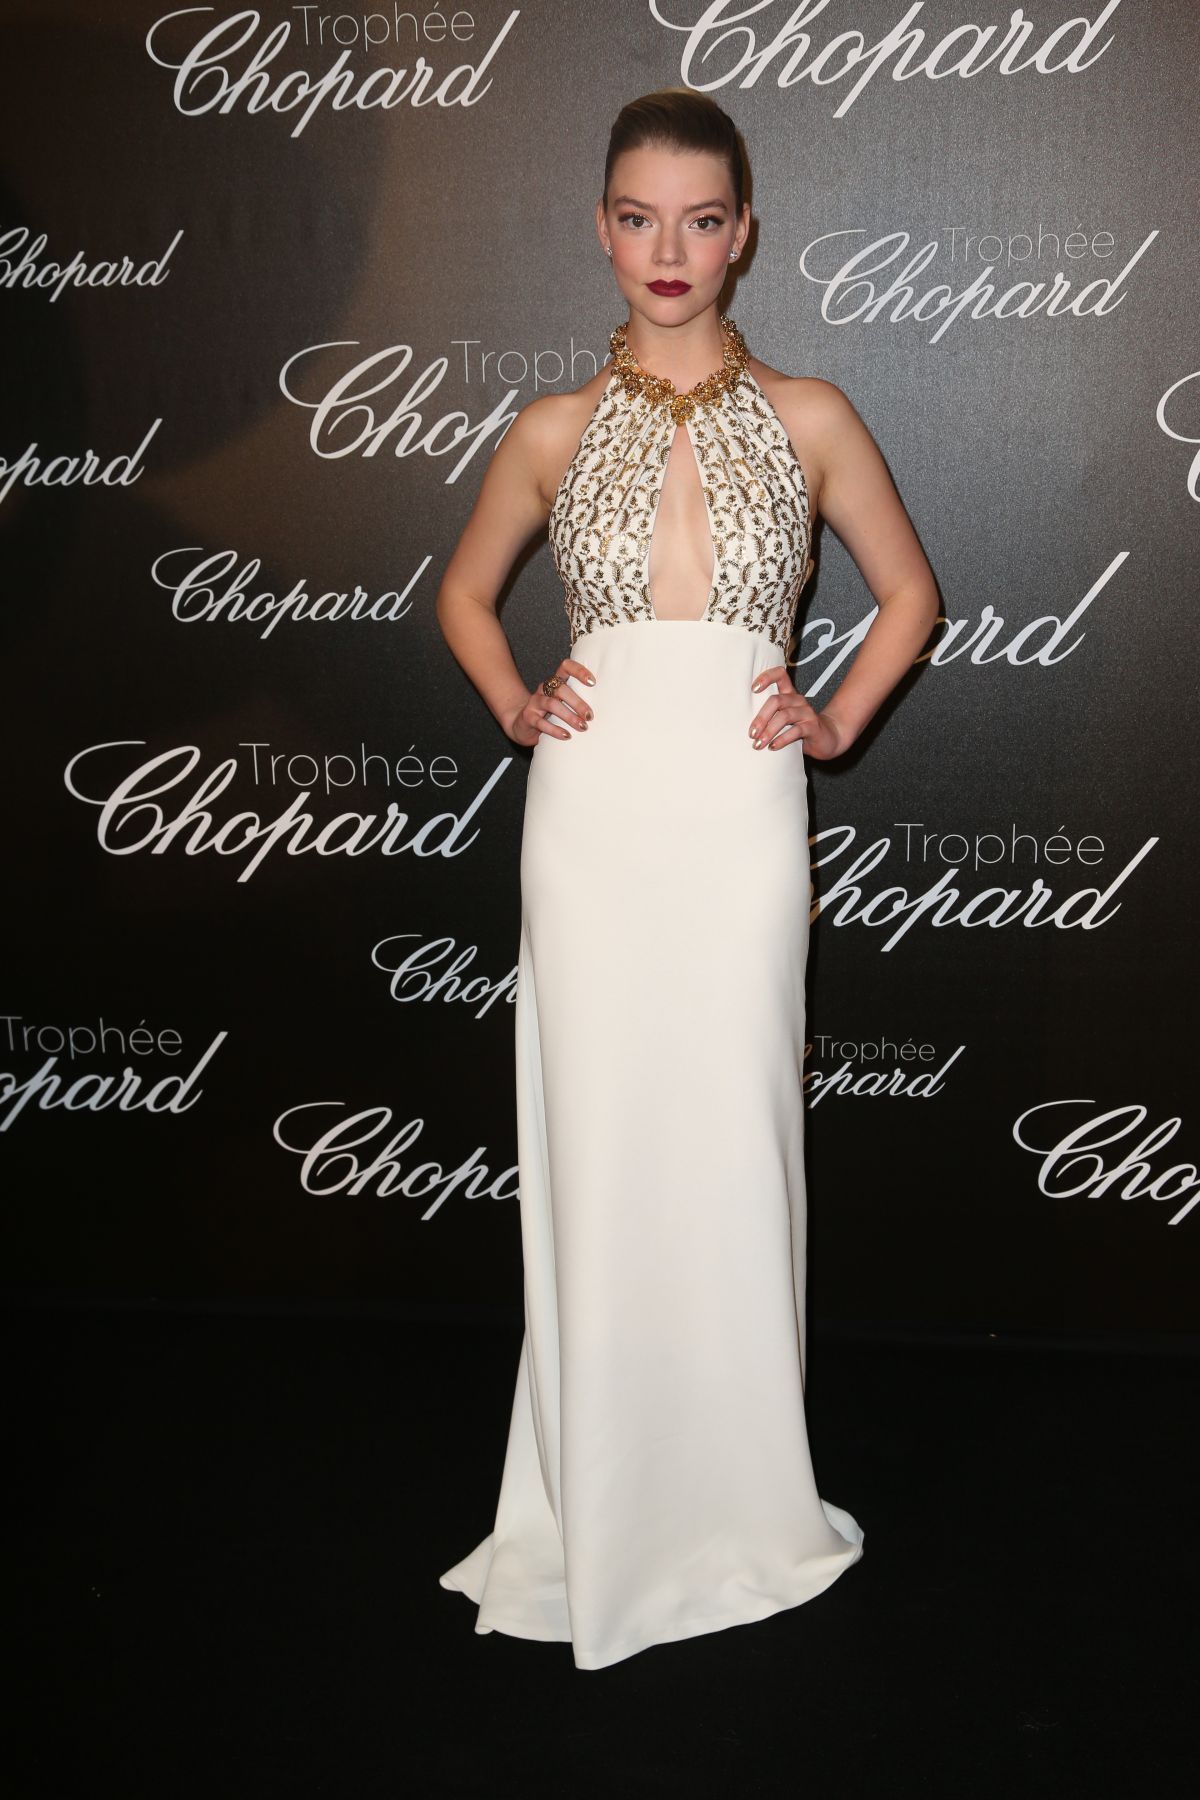 ANYA TAYLOR-JOY at Chopard Trophy Event in Cannes 05/22/2017